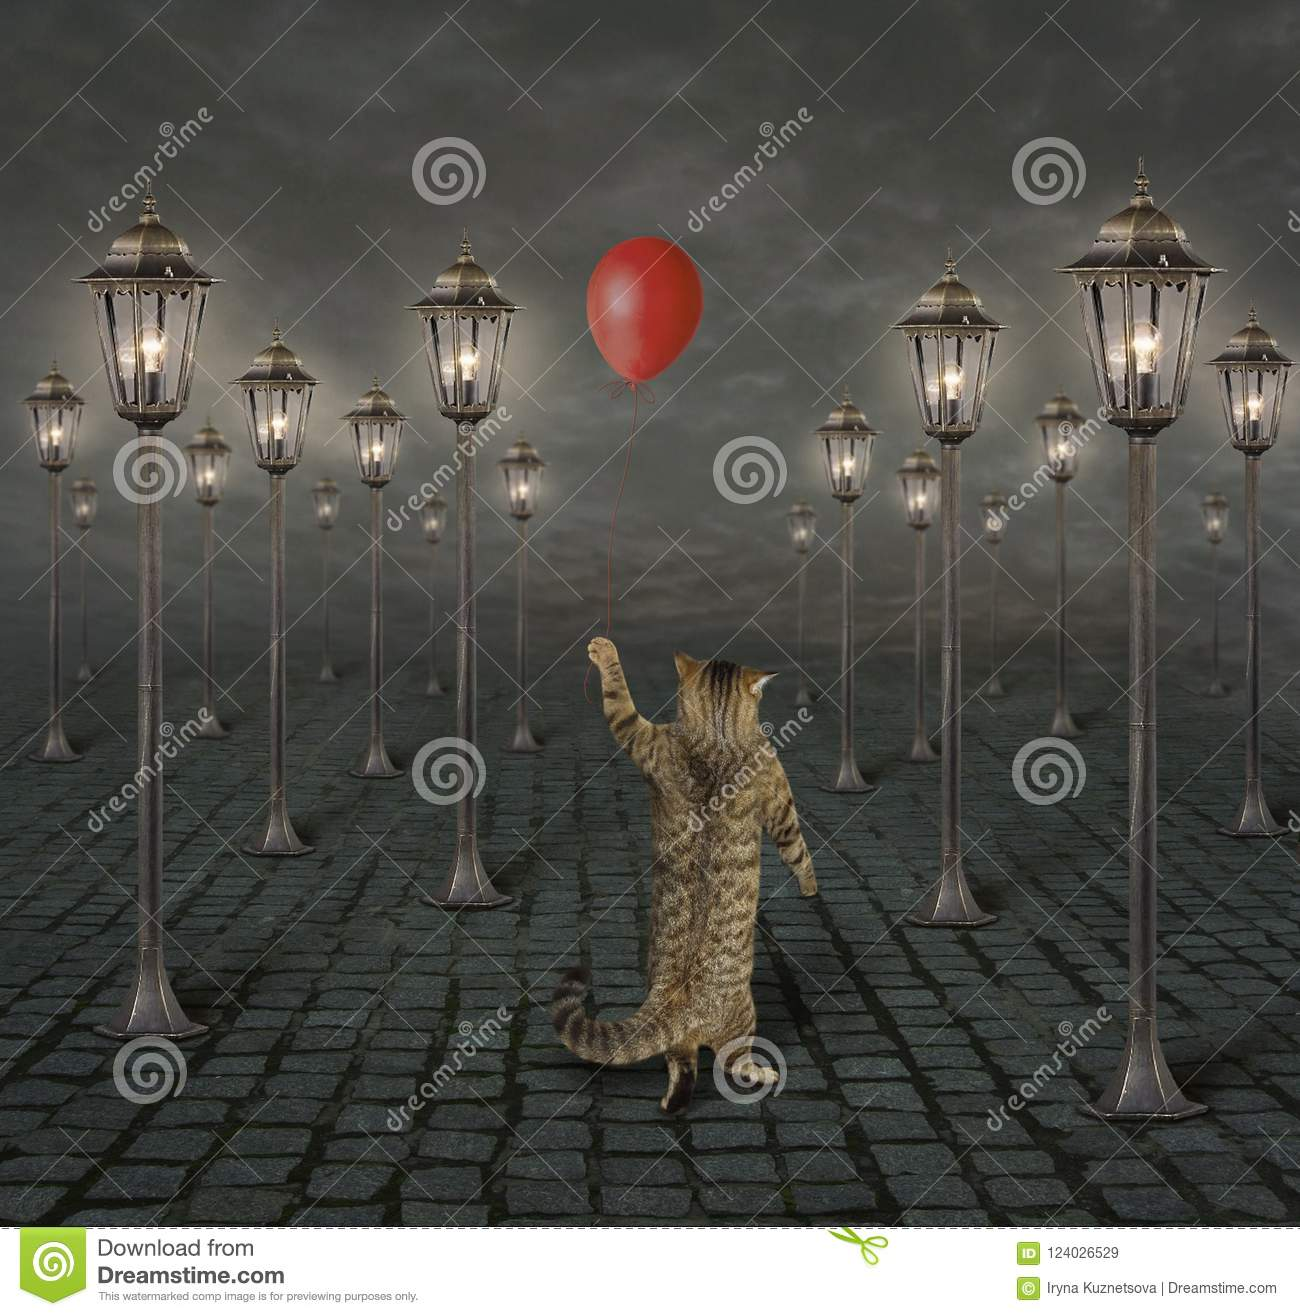 Cat and street lights